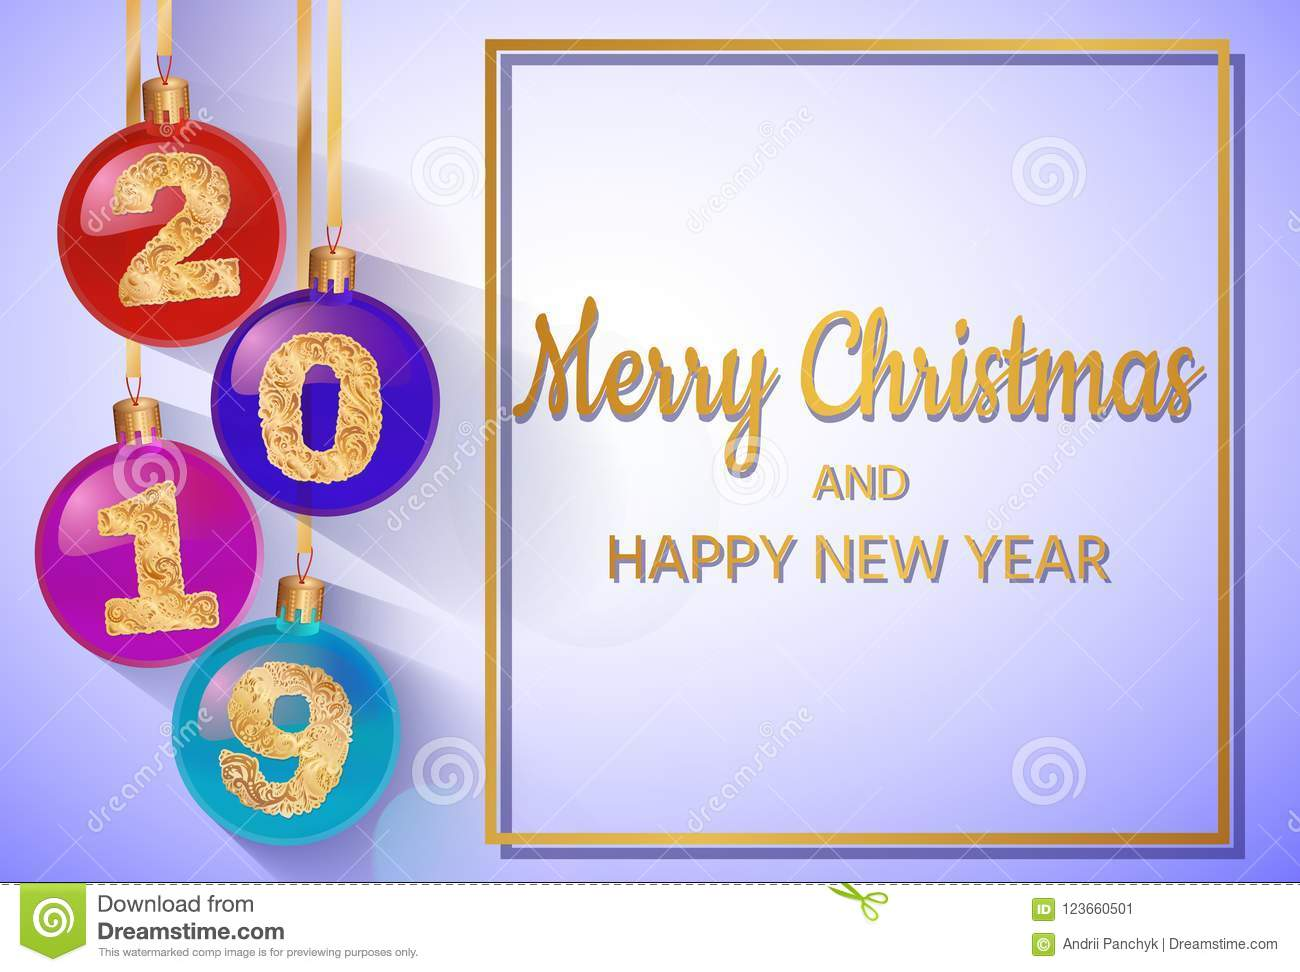 Happy New Year 2019 Vector Greeting Illustration With Golden